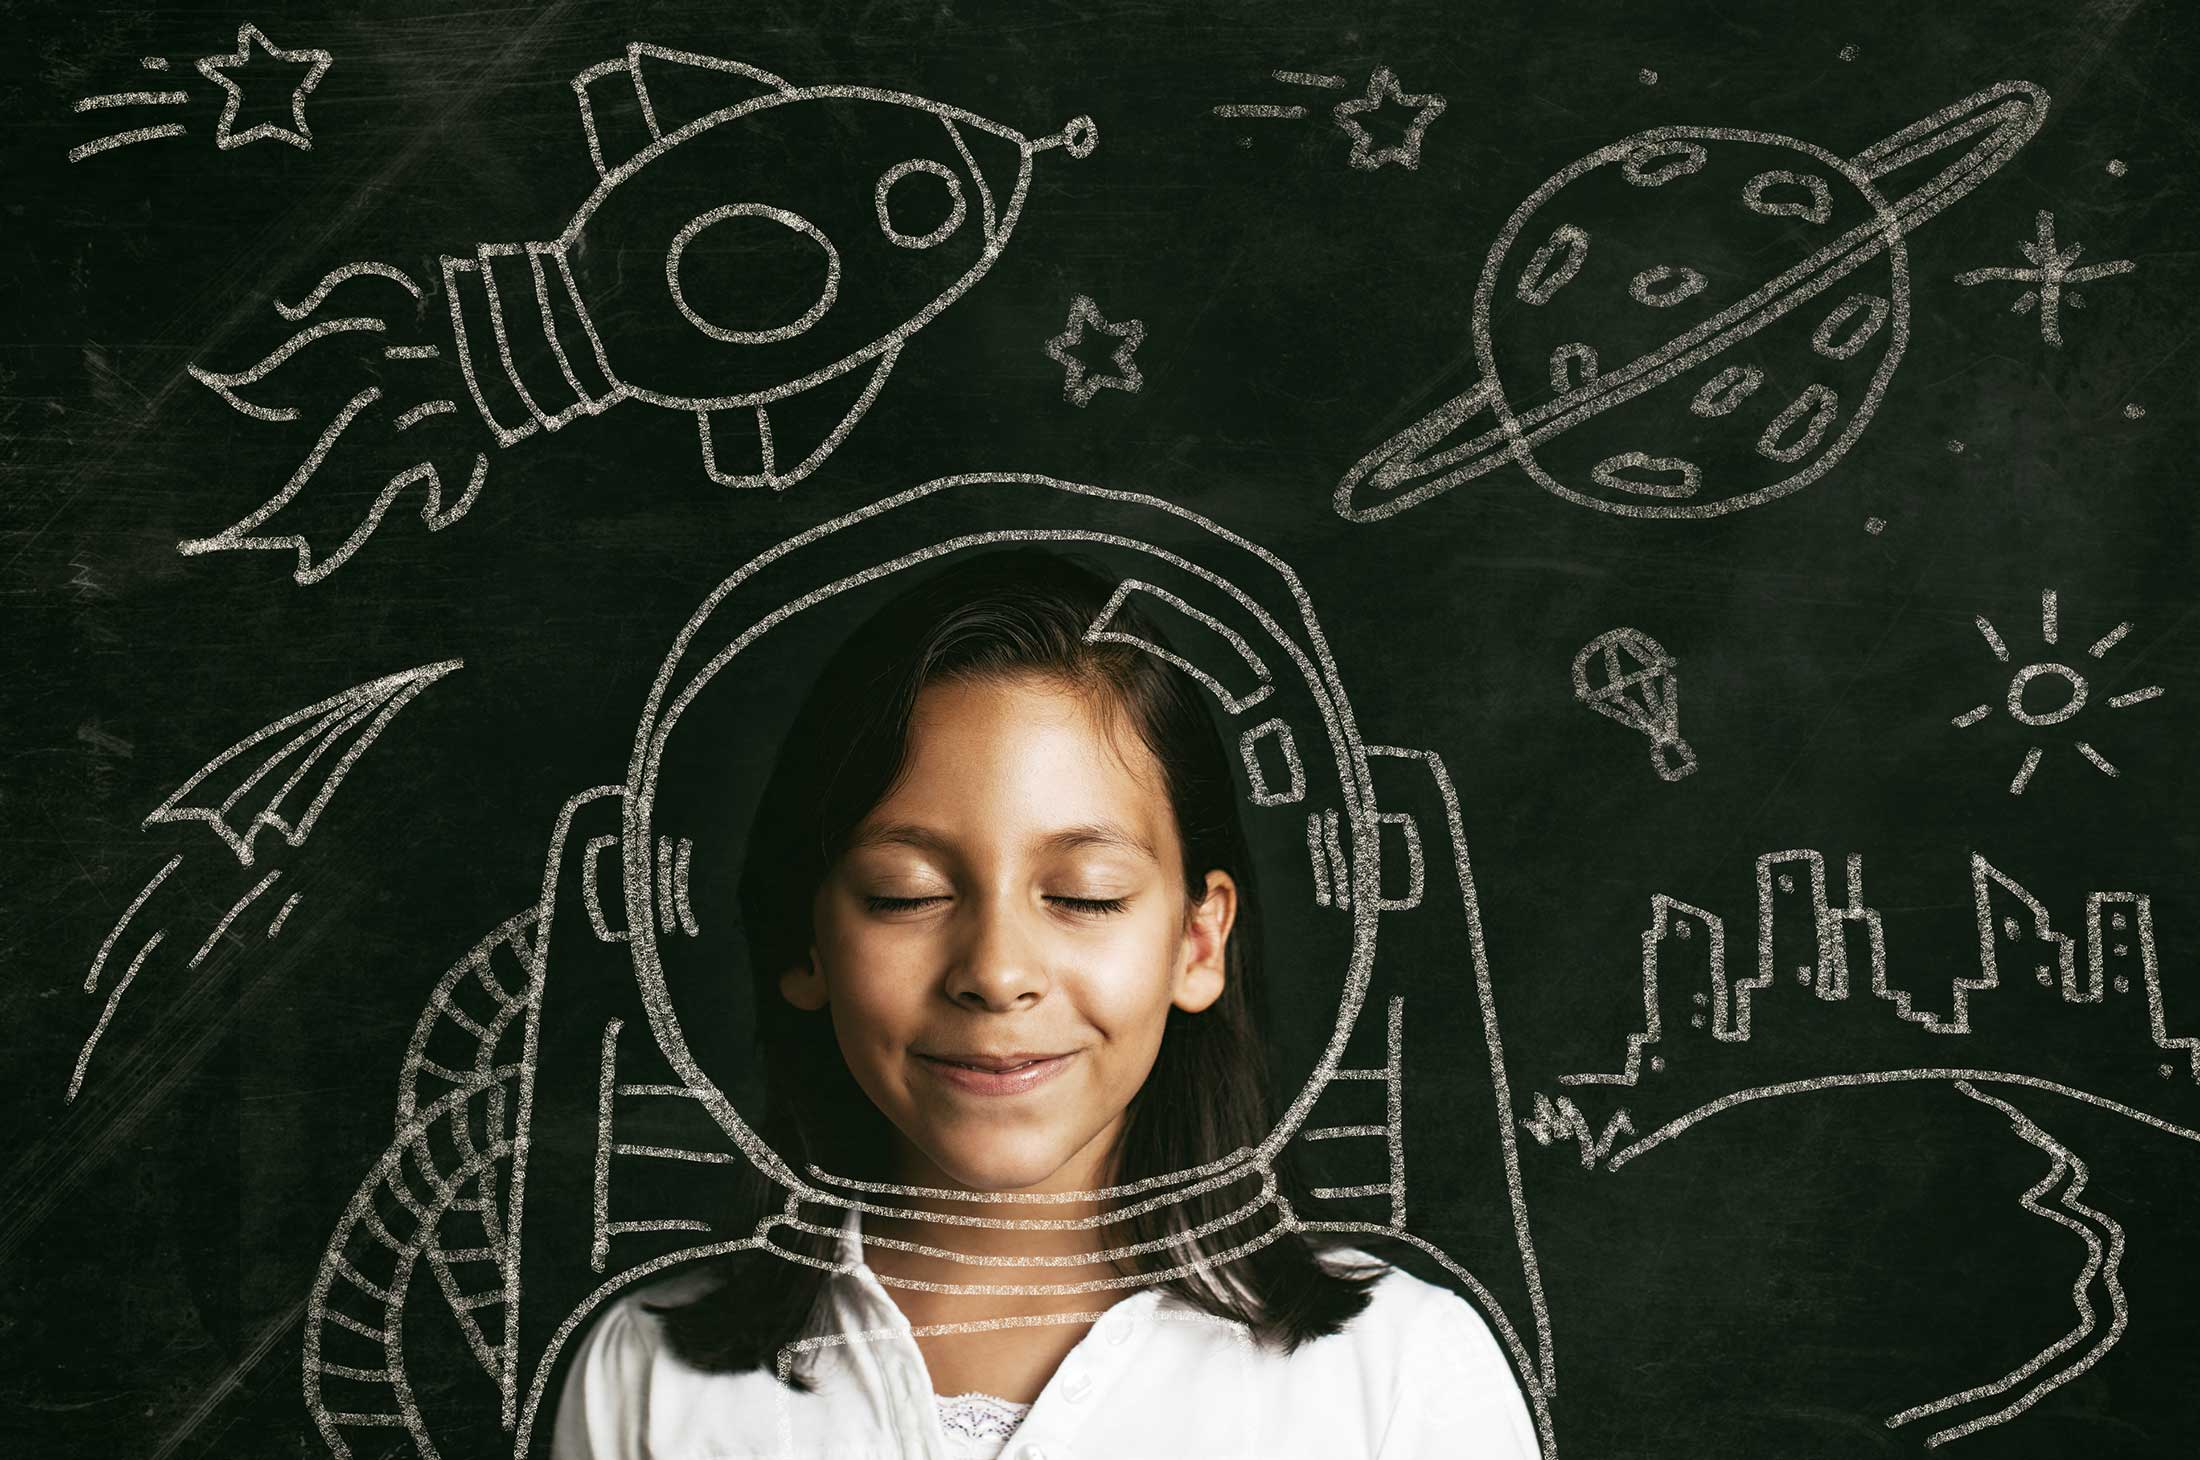 School Success: Goal Planning for Your New School Year